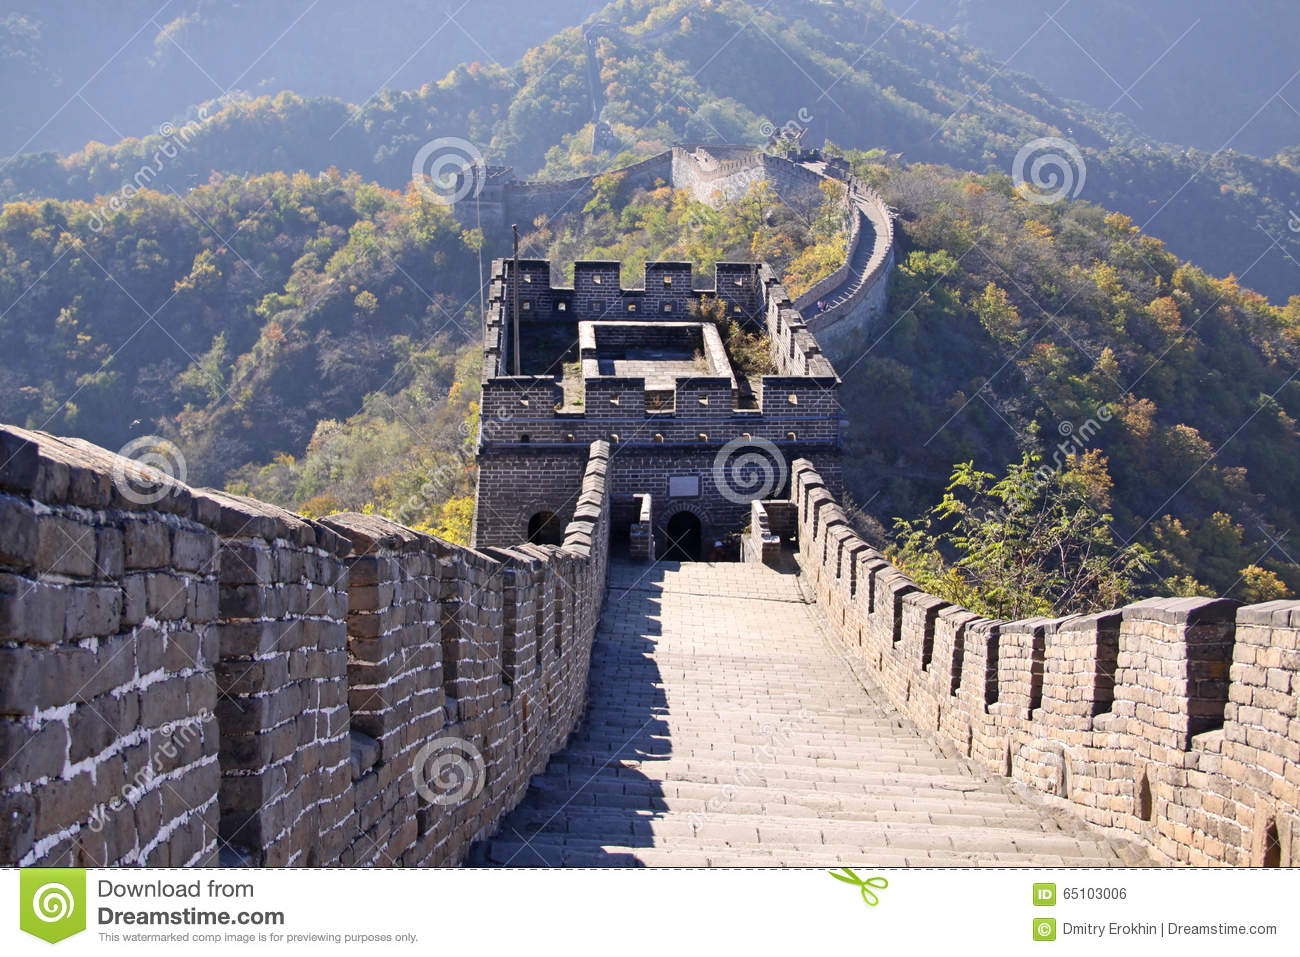 Ca C2 B3a Pinyin Ma C2 B9tianya C2 B9 Is A Section Of The Great Wall Of China Located In Huairou County 70 Km Northeast Of Central Beijing